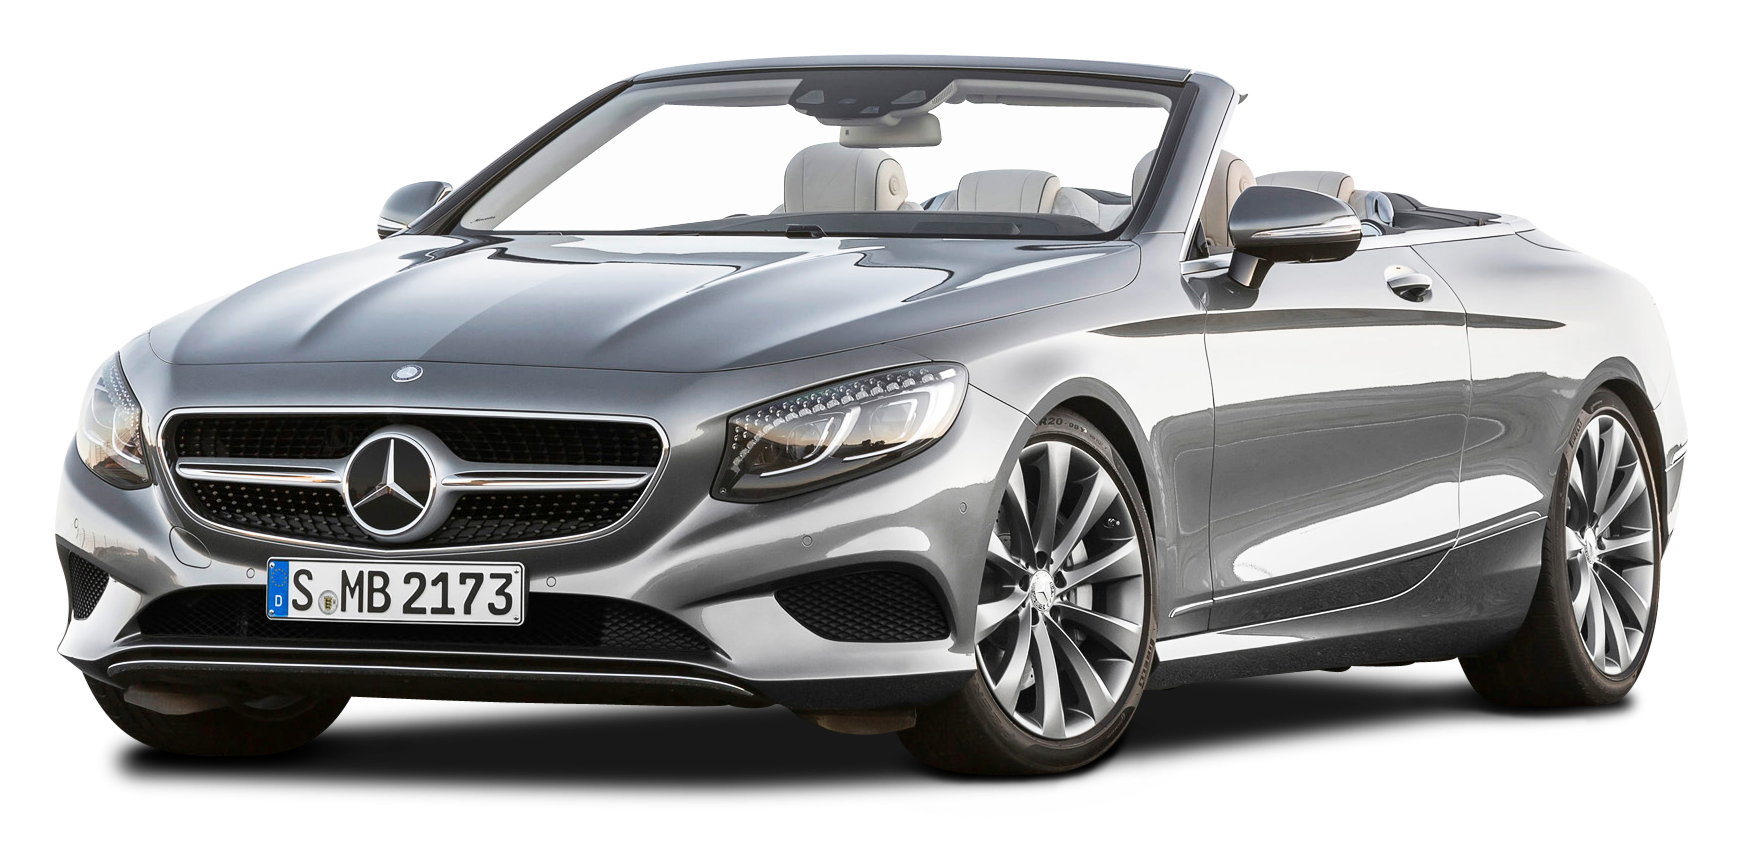 Silver Mercedes Benz S Class Cabriolet Car PNG Image